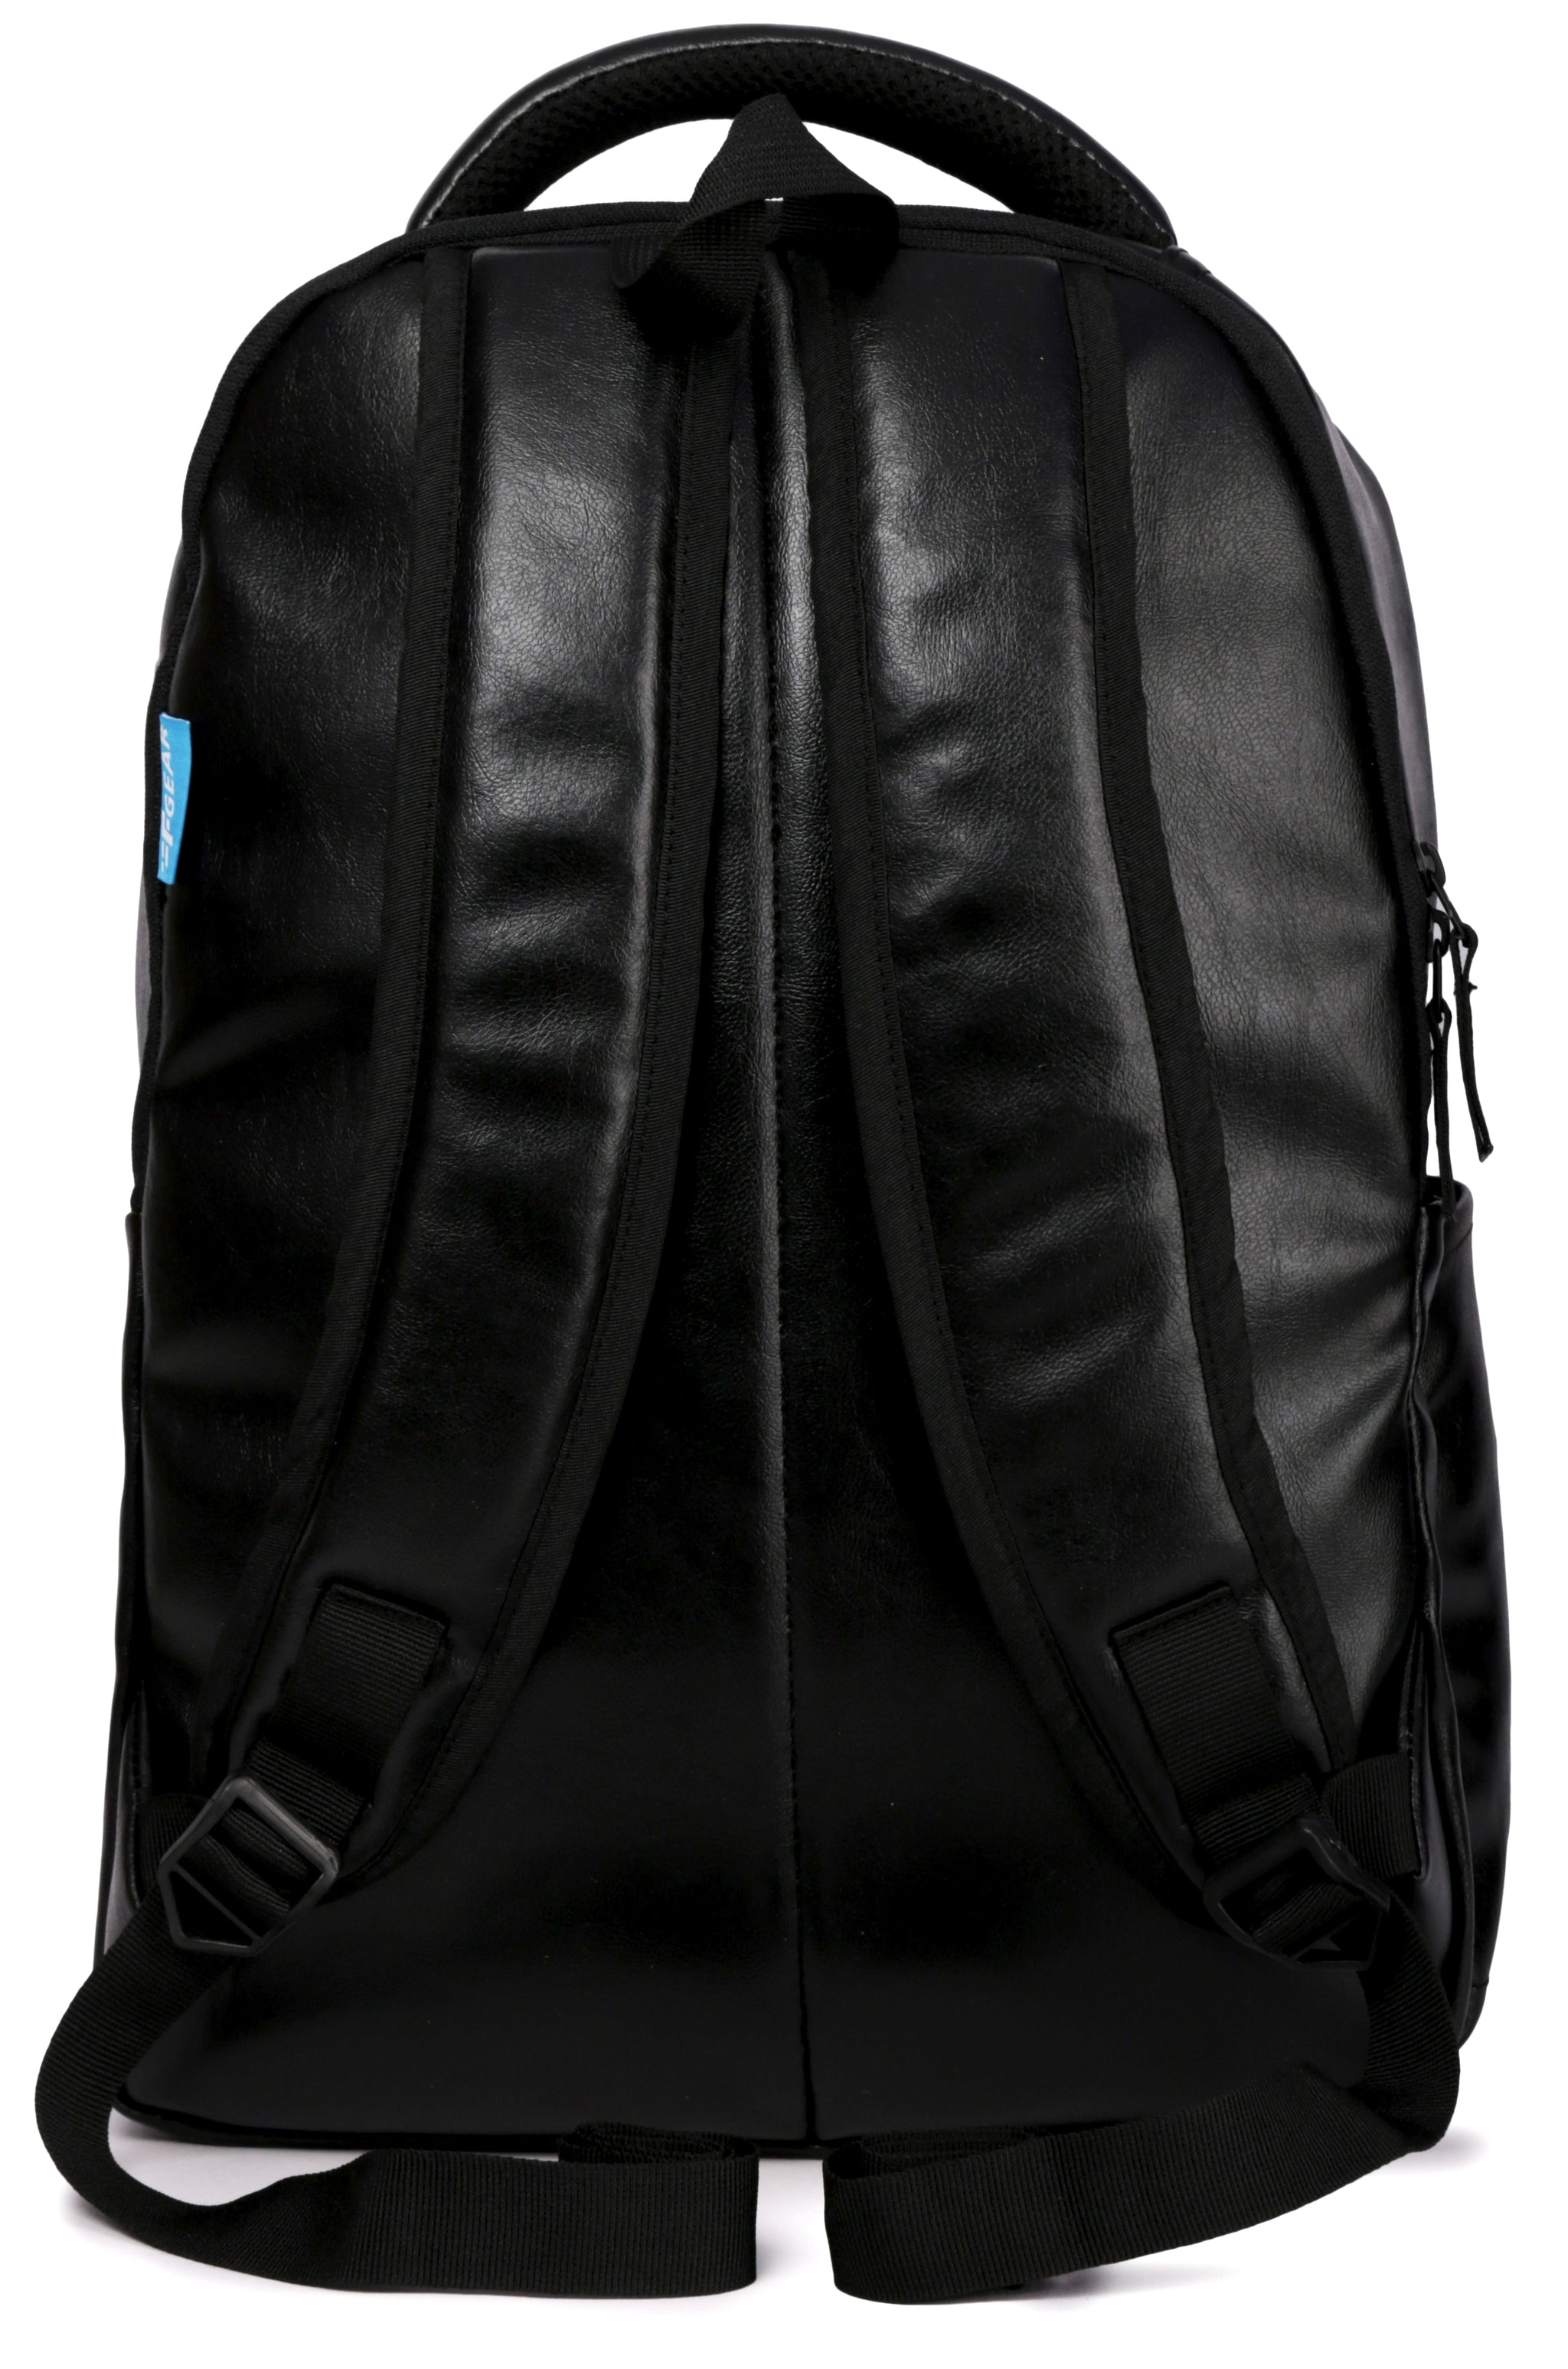 F Gear Bingo 25 L Laptop Backpack  (Black)